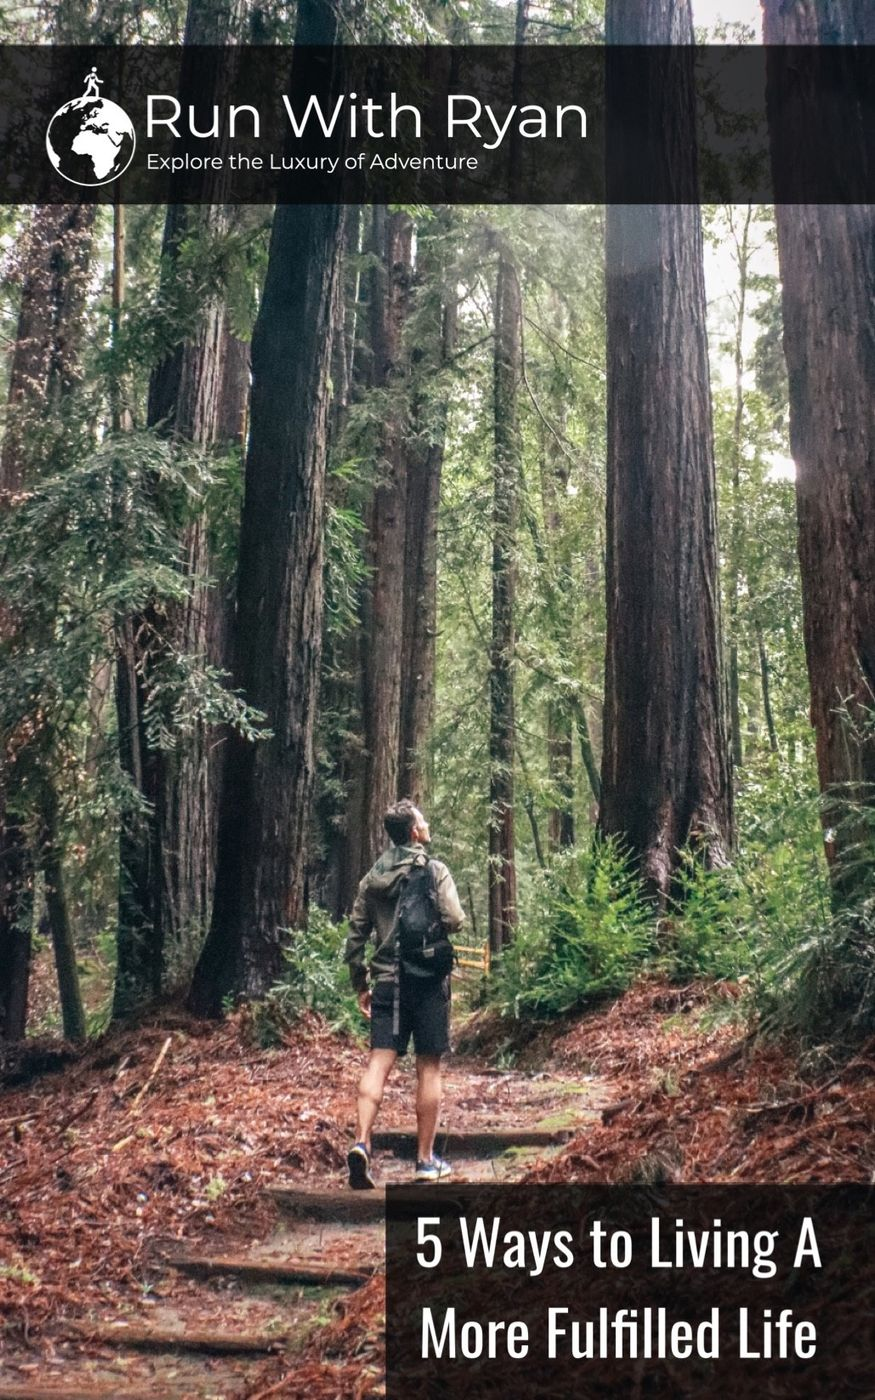 Try out these 5 tips to live a life with greater fulfillment and explore a retreat deep in the California Redwoods, Canyon Ranch Woodside. These tips are for anyone looking to improve their health, wellness, body and mind...